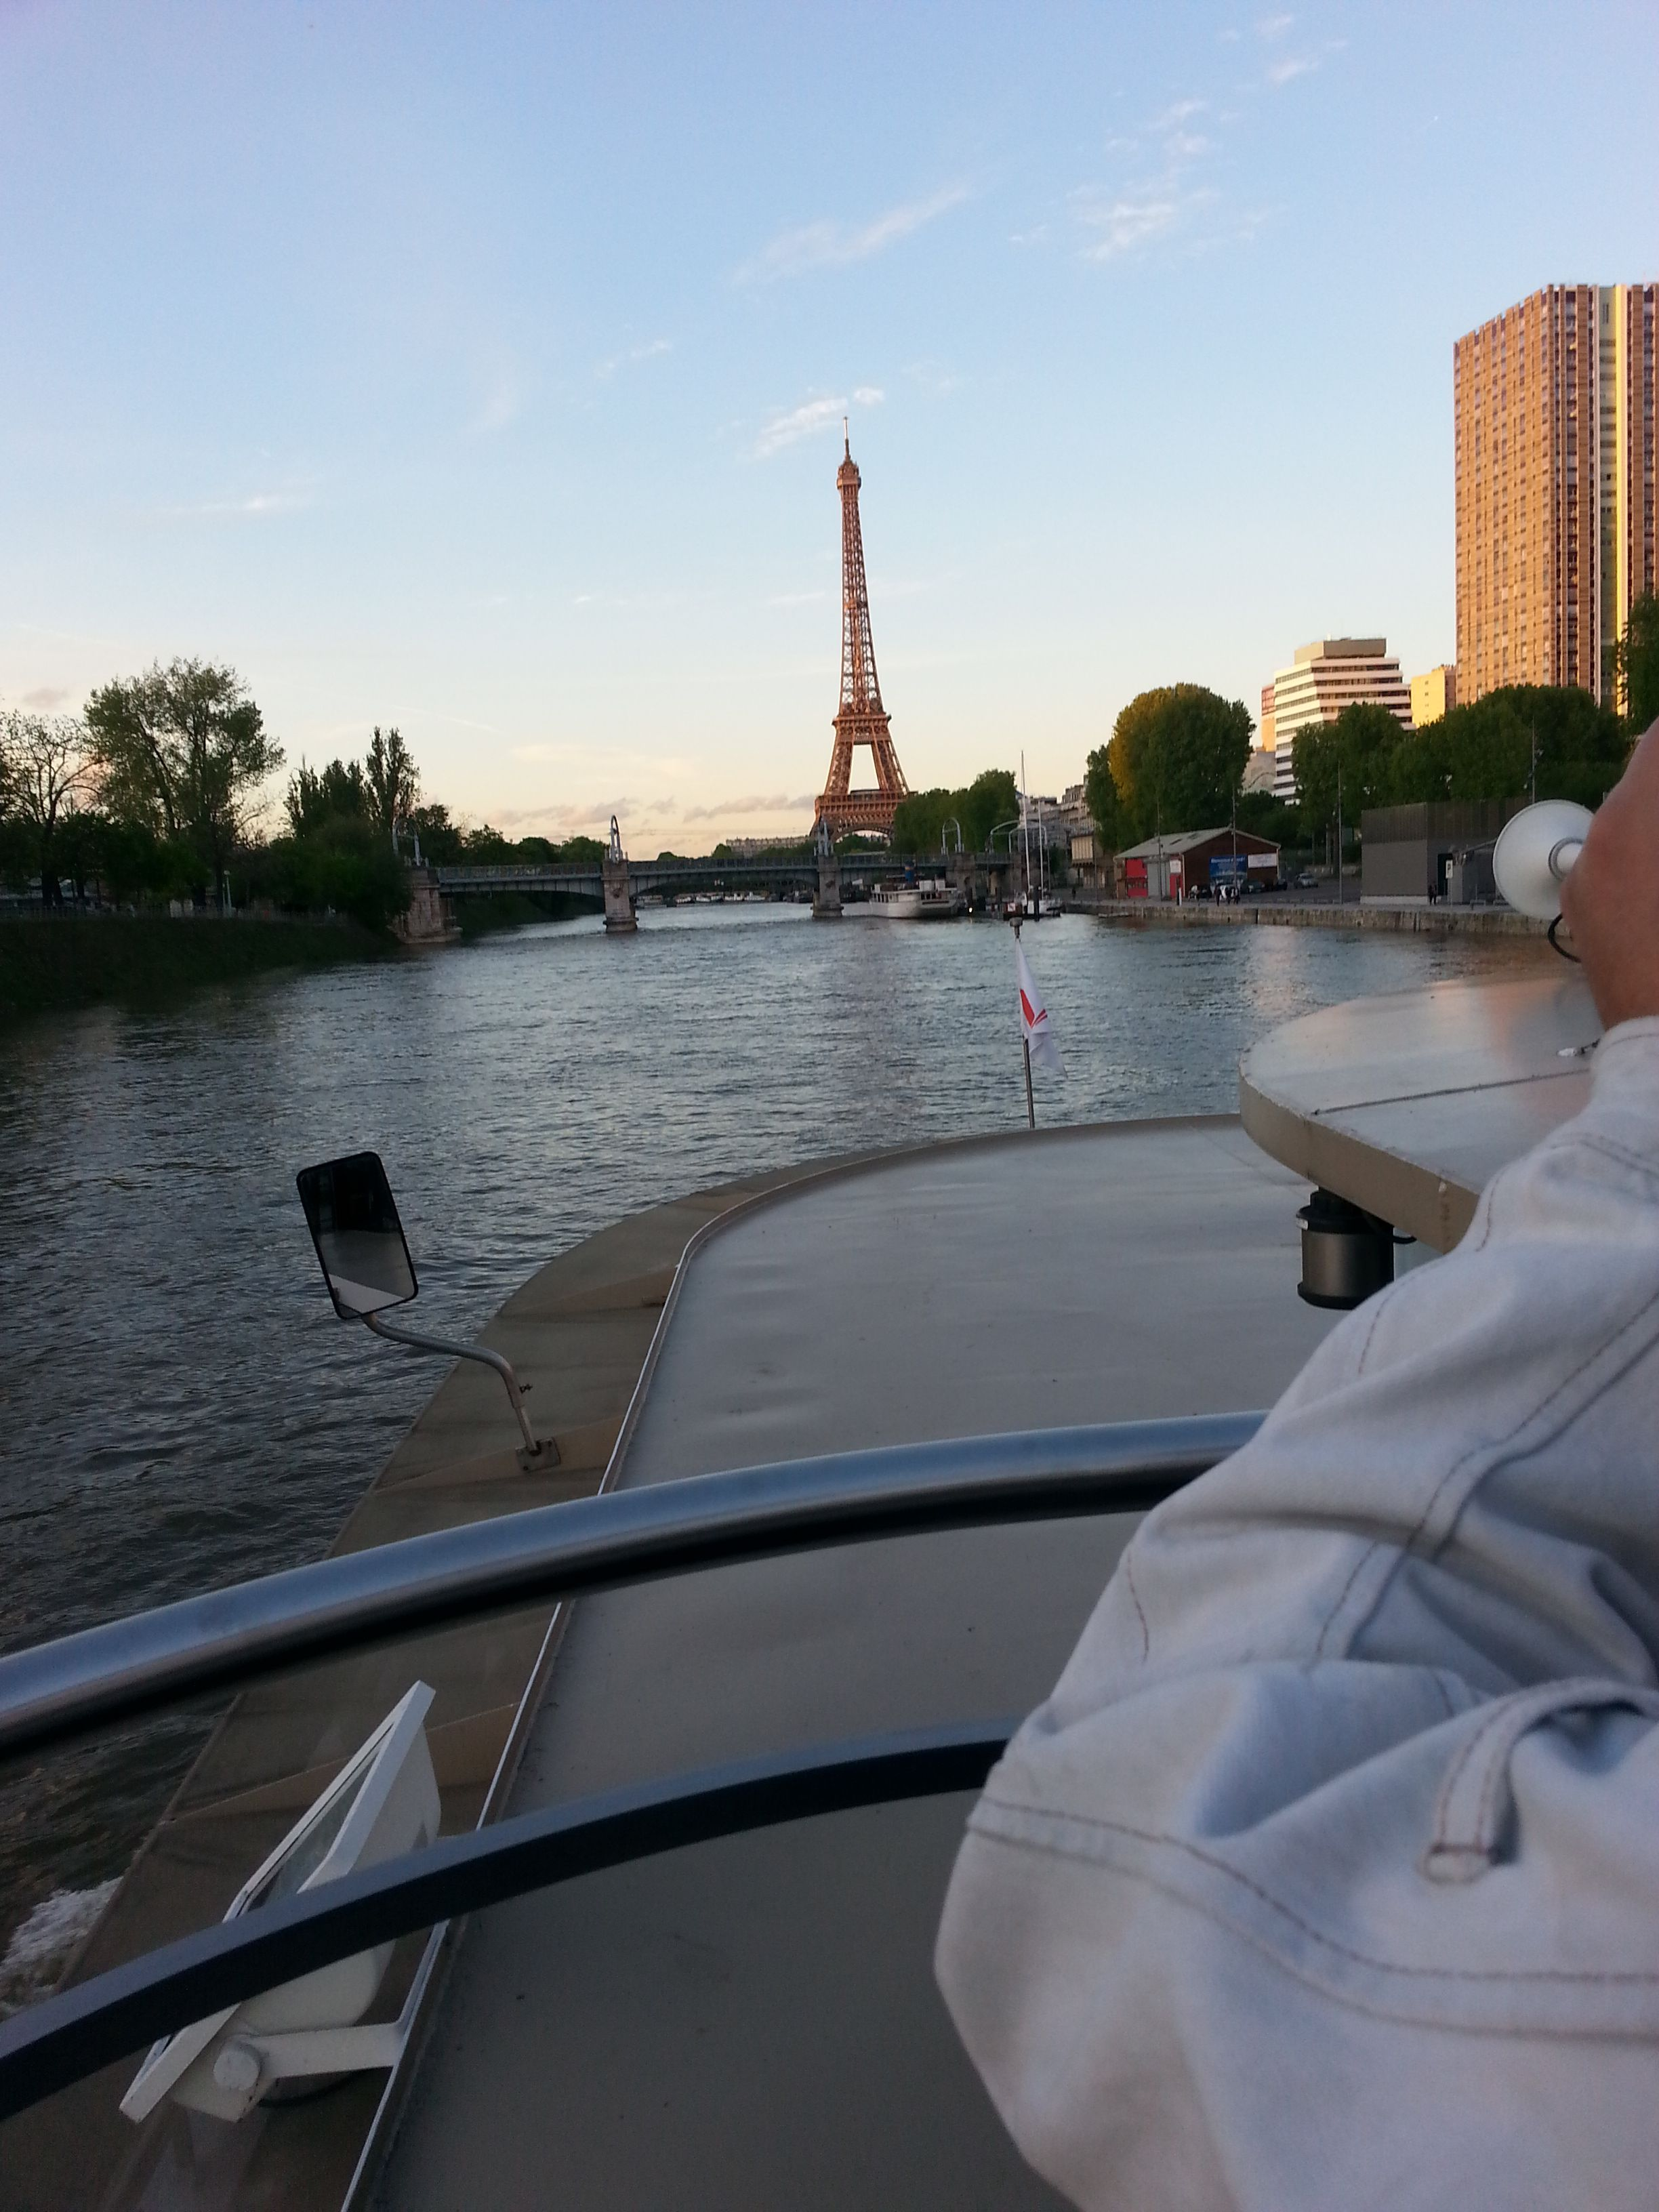 Did you miss the Tour Eiffel in my other pictures? Here's one more chance to look at it as seen from the Seine.